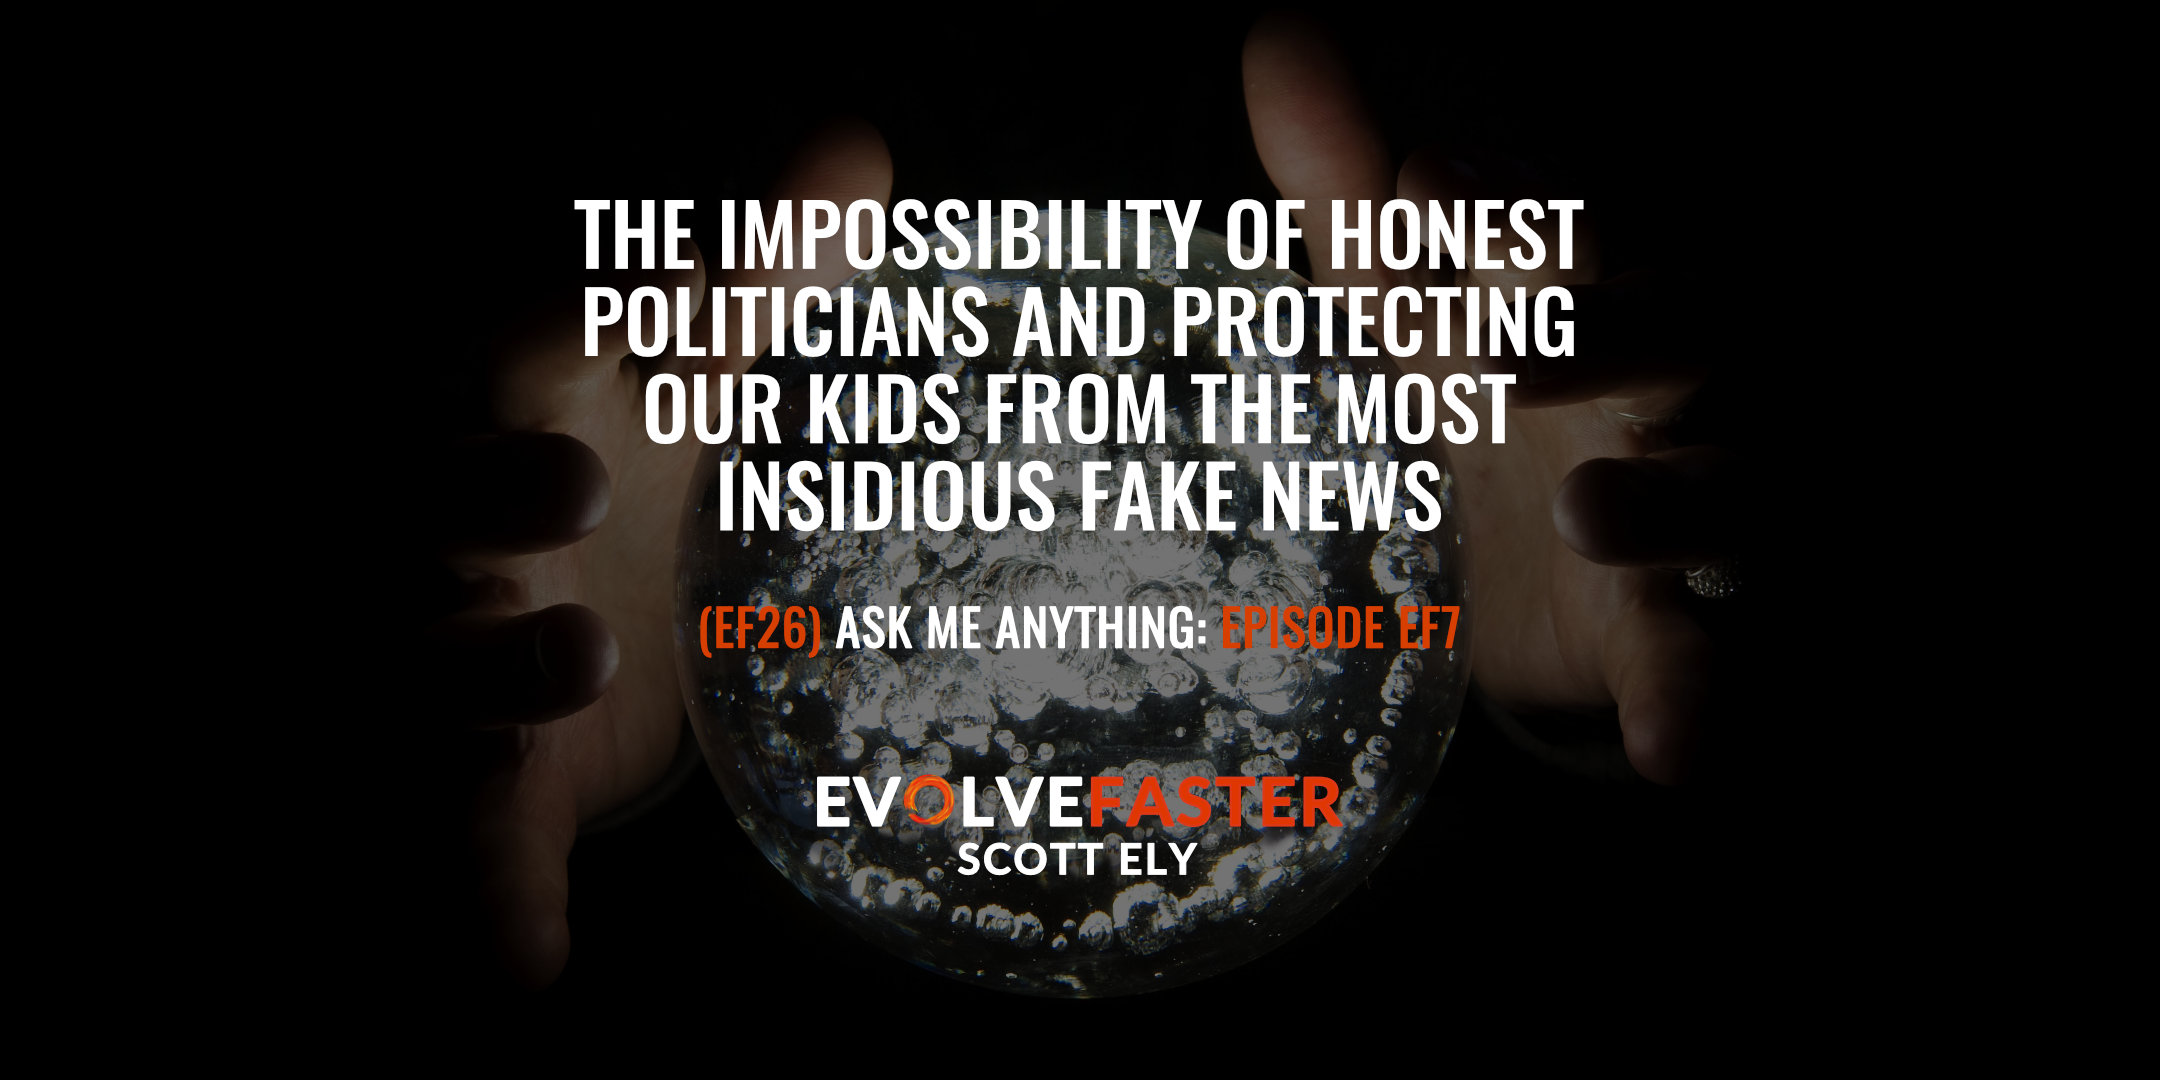 (EF26) AMA-EF7: The Impossibility of Honest Politicians and Protecting Our Kids from The Most Insidious Fake News Ask Me Anything for Episode EF3